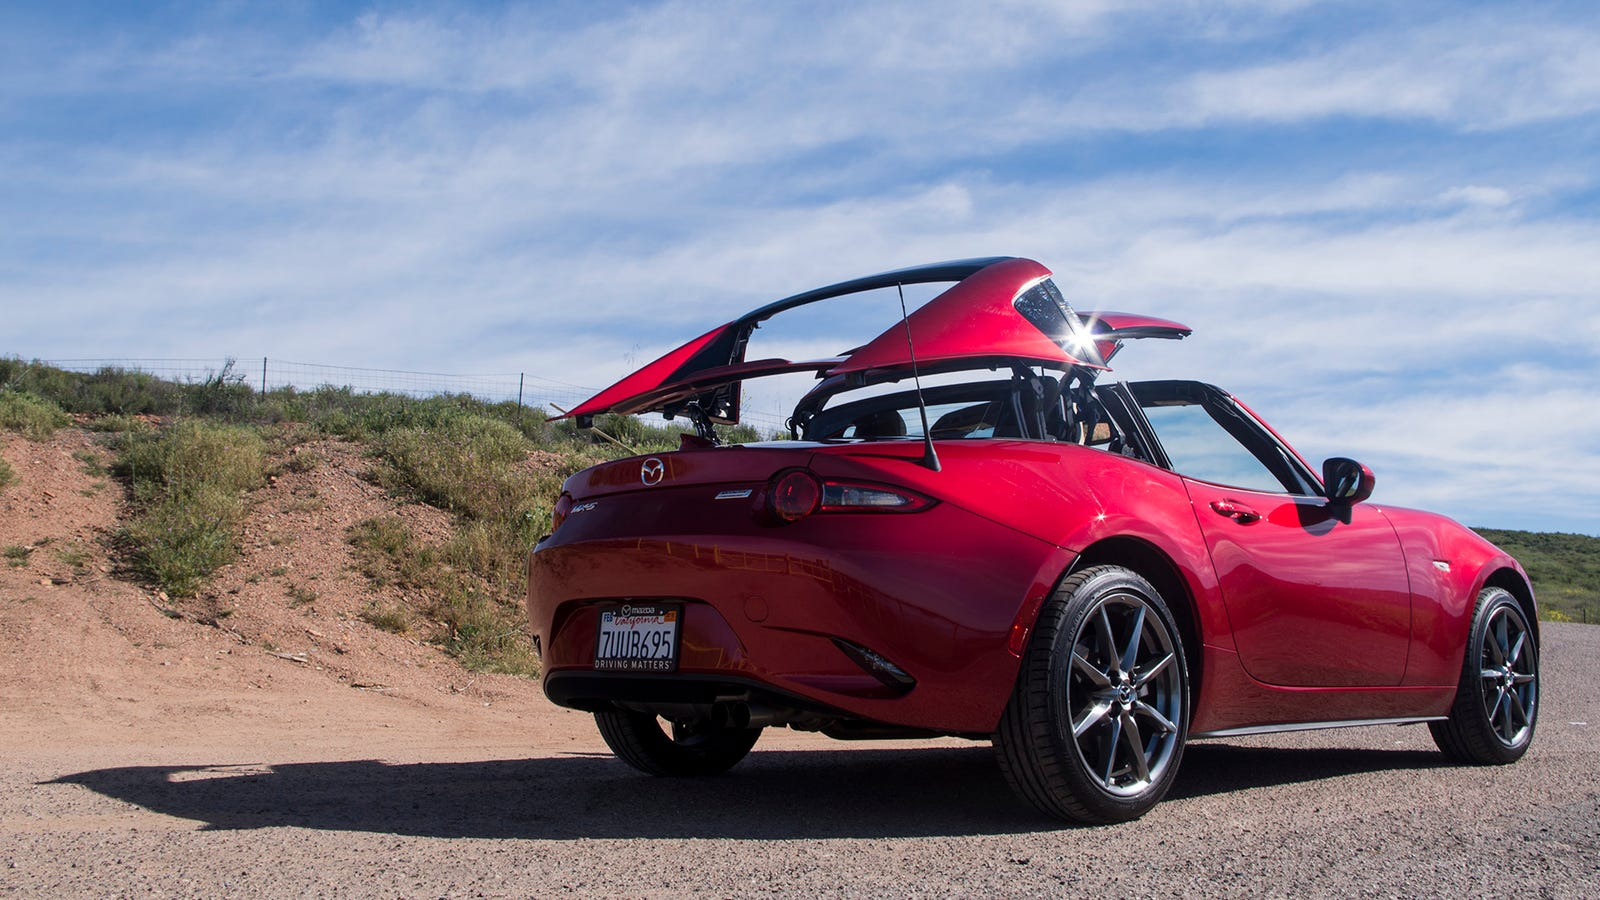 There S One Big Difference Between Driving A Mazda Miata